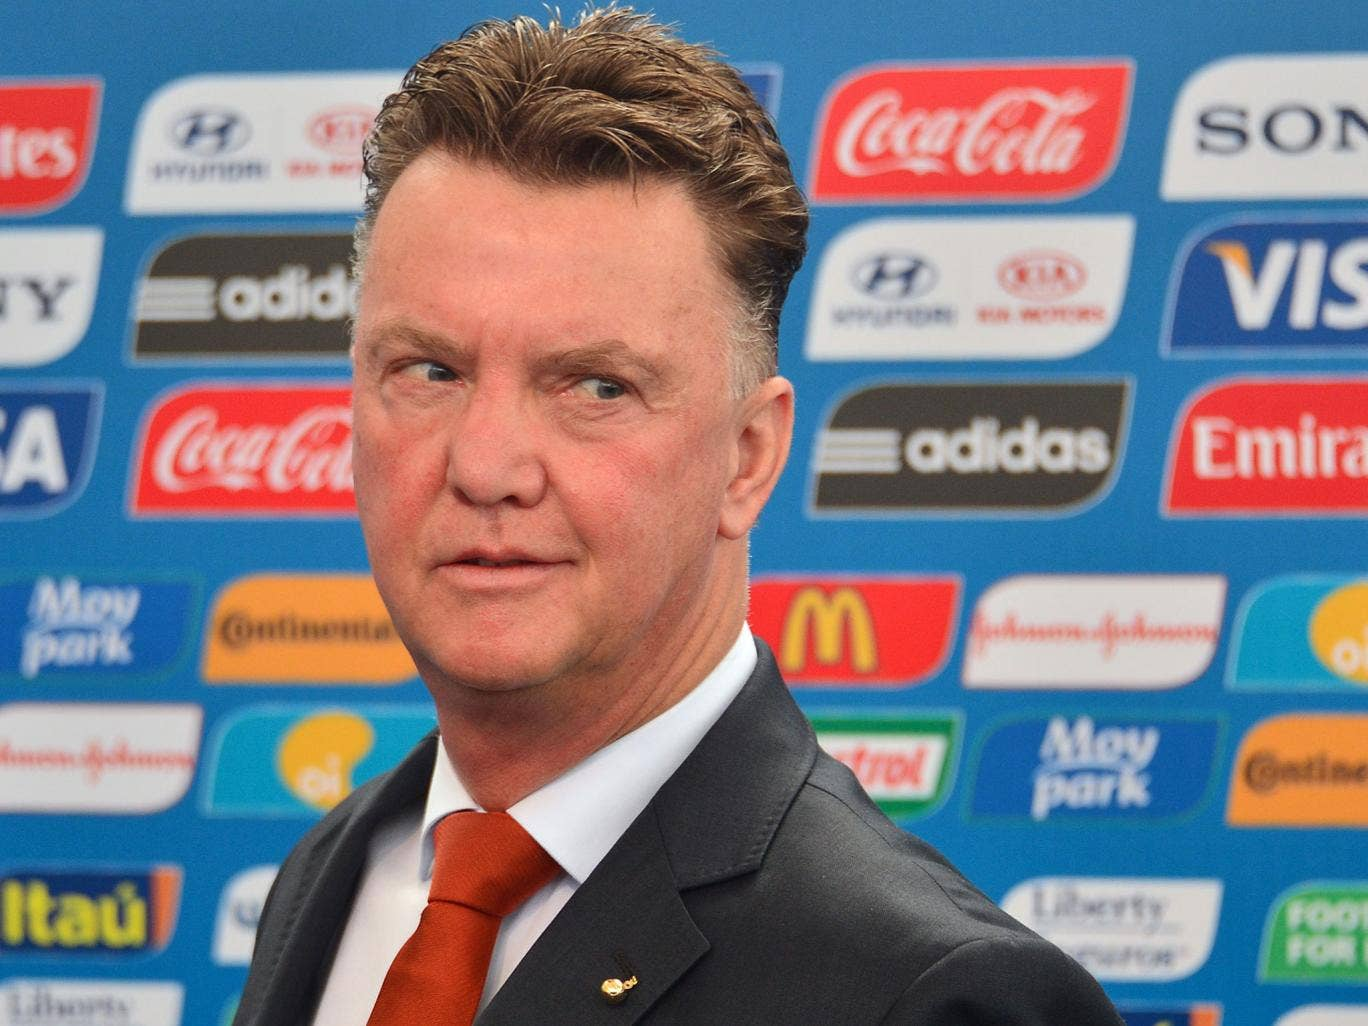 Louis van Gaal admits he could be tempted to take on a 'new challenge' when he leaves his role as coach of the Netherlands national team